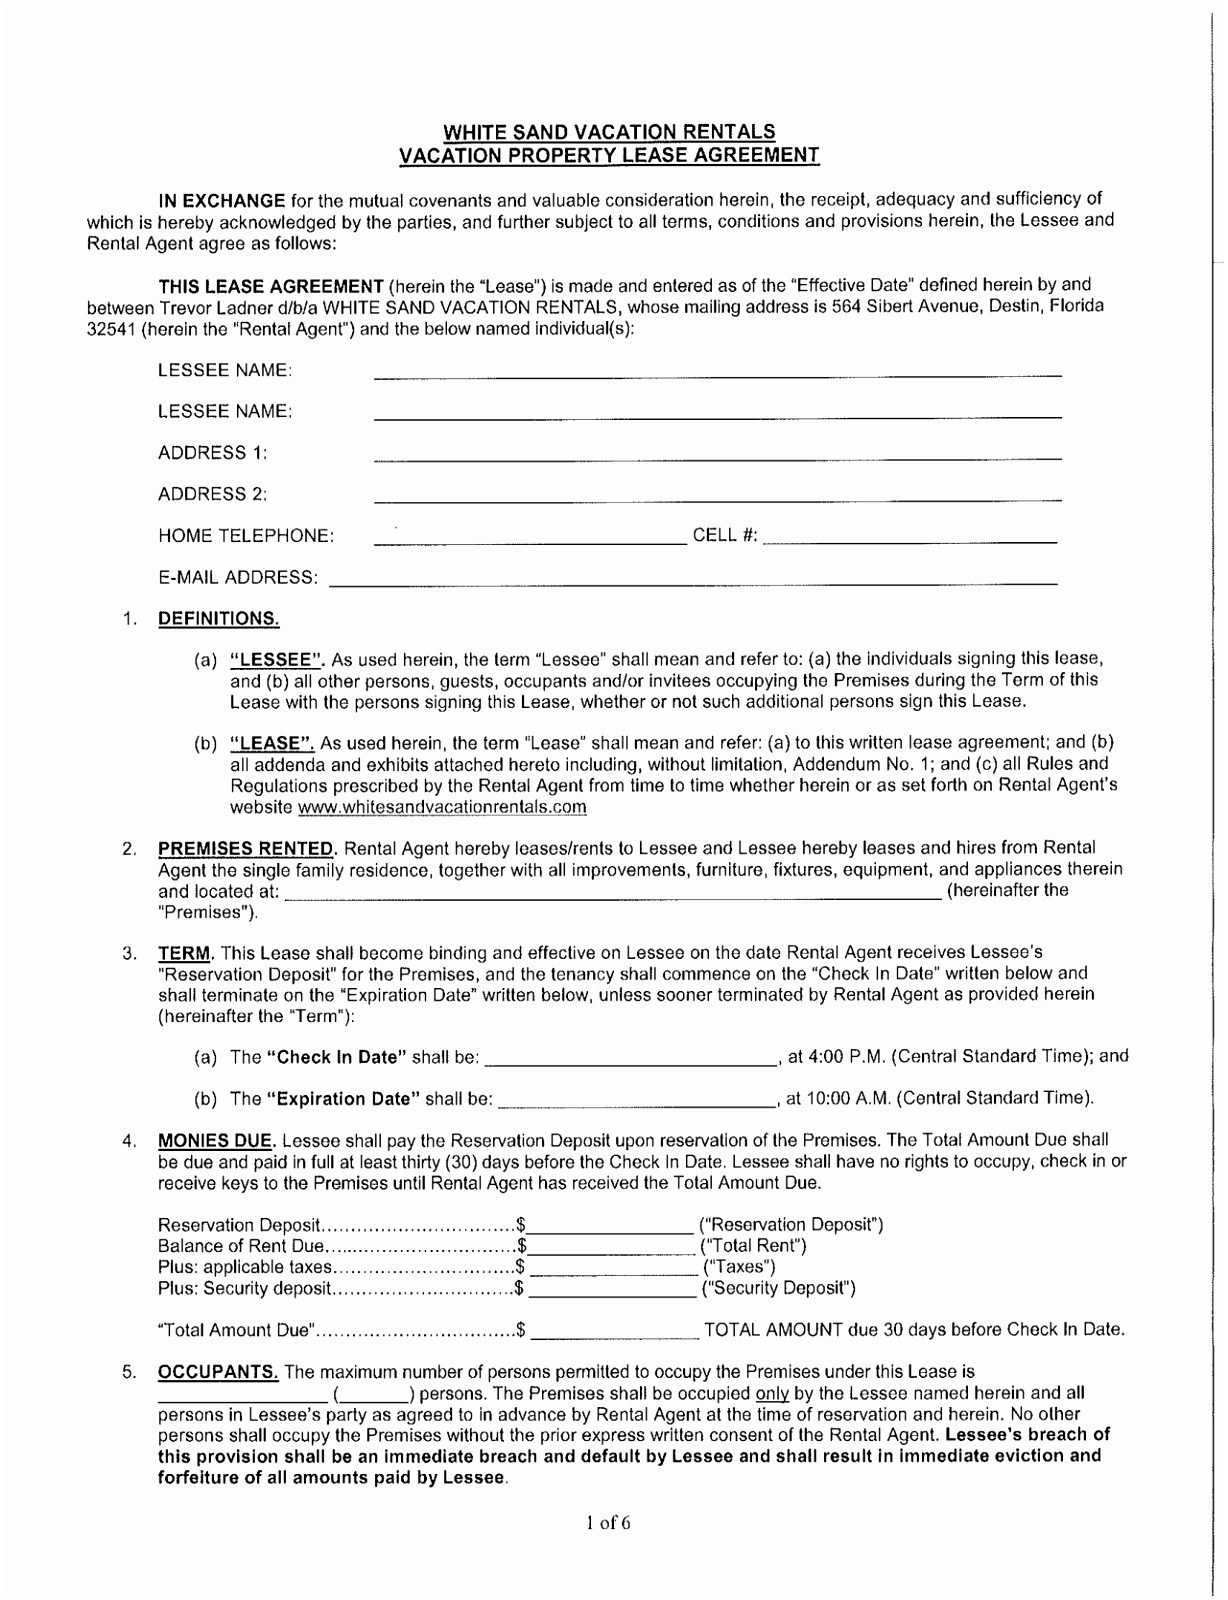 Vacation Rental Agreement Forms Free 12 Commercial Lease Agreement Florida Template Uiiru Templatesz234